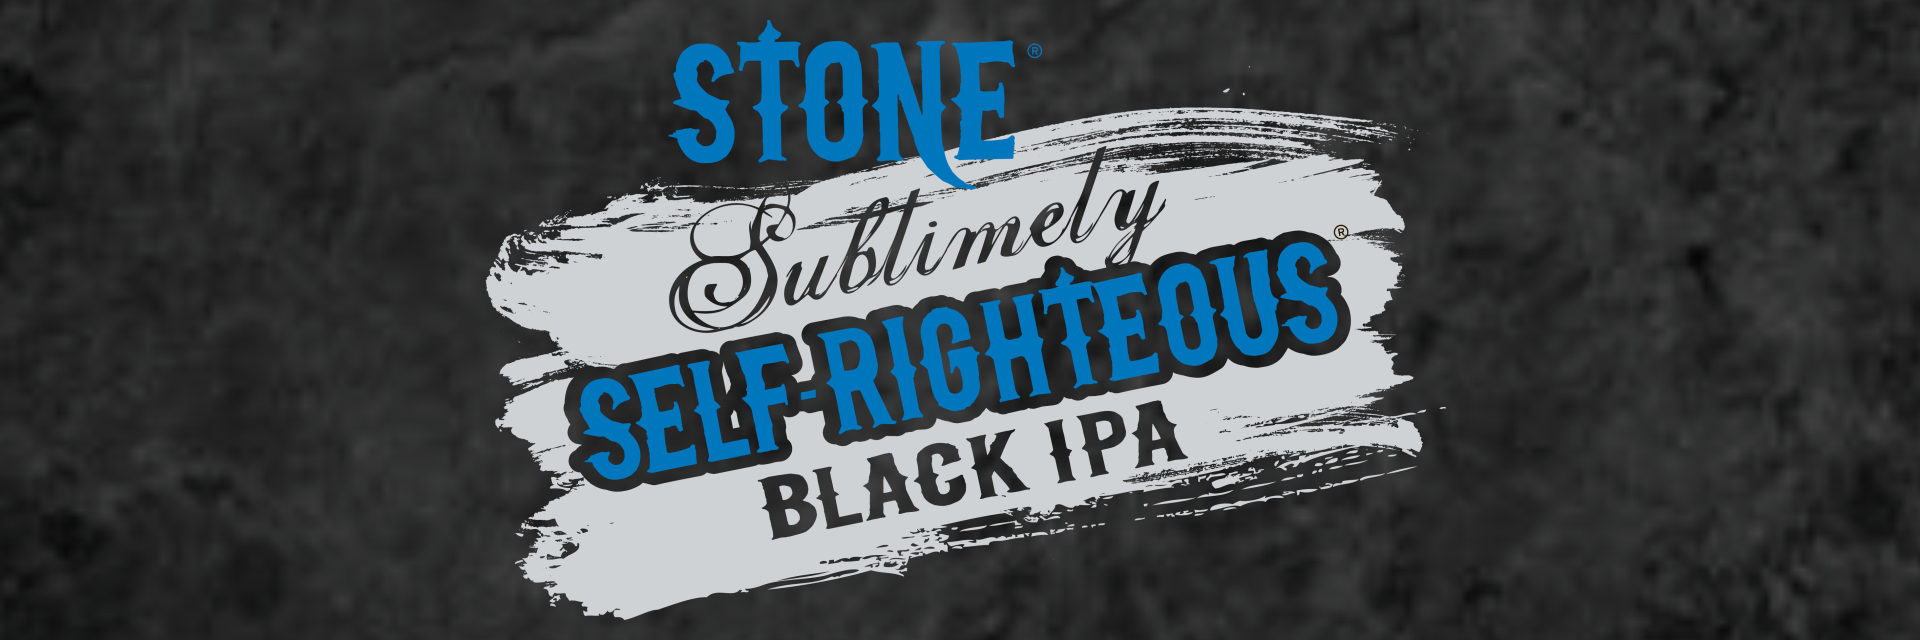 header image of the stone brewing sublimely self righteous logo against a black background